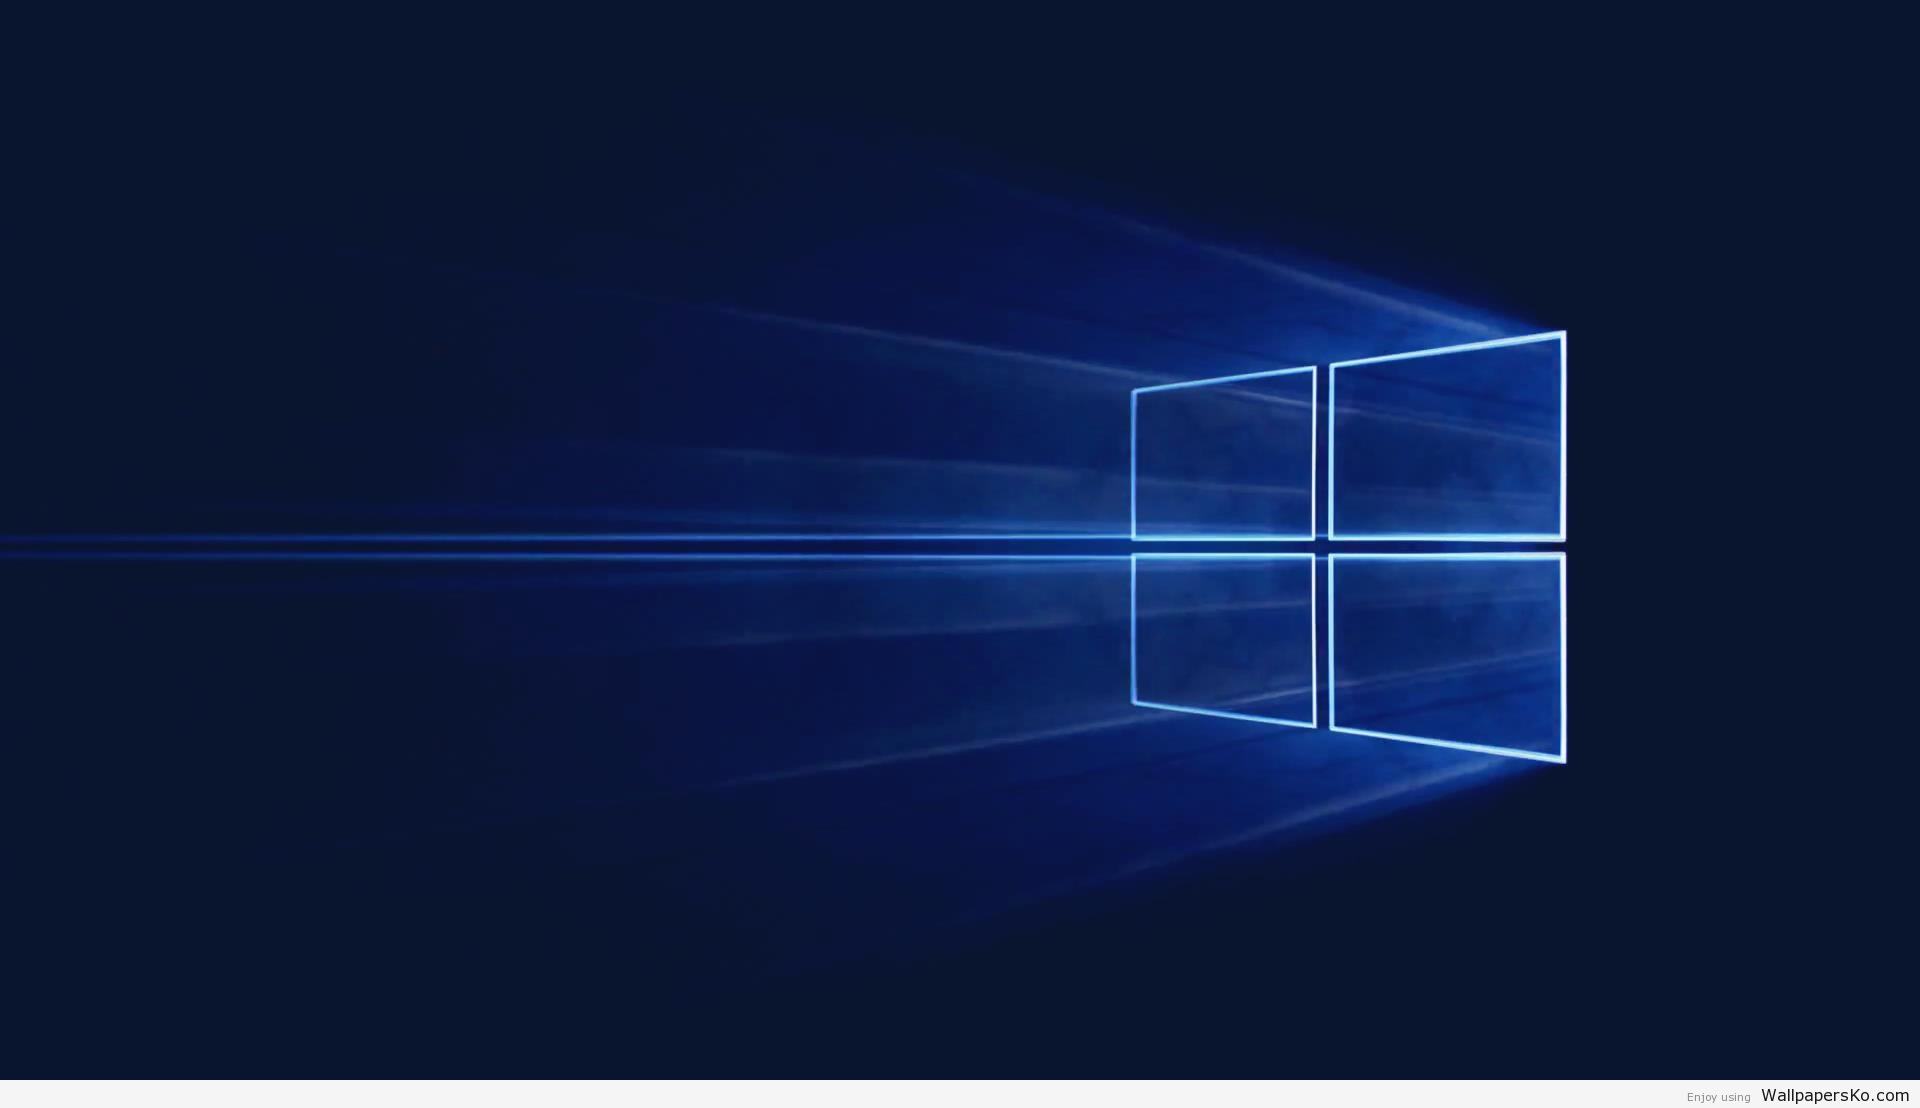 windows 10 desktop background